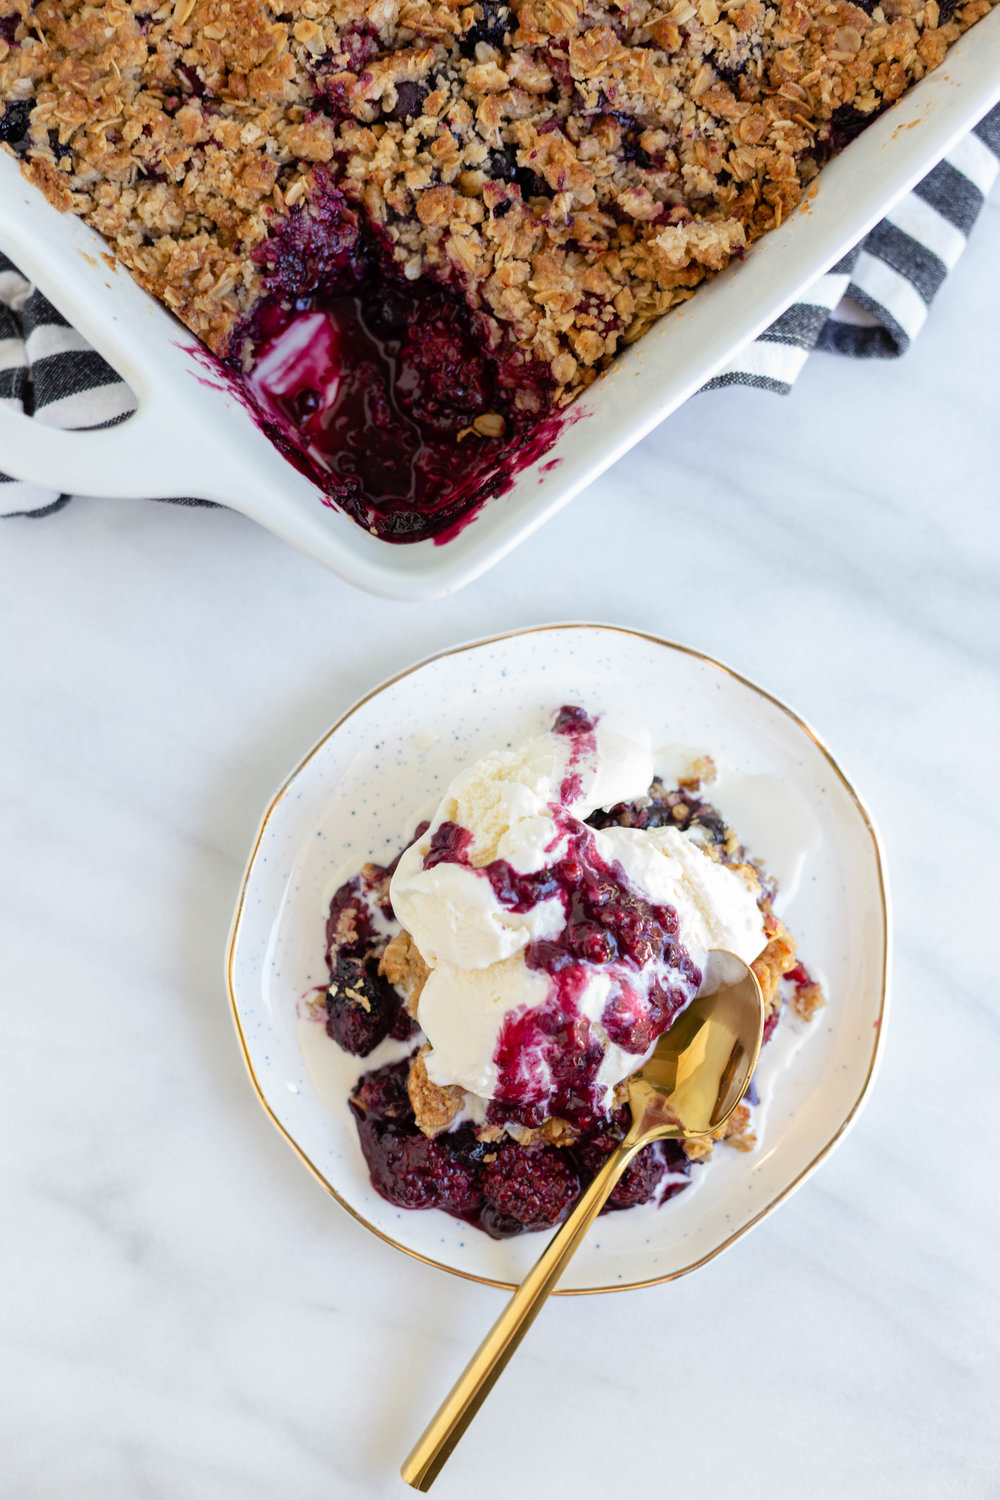 Triple berry crisp - a cozy life staple